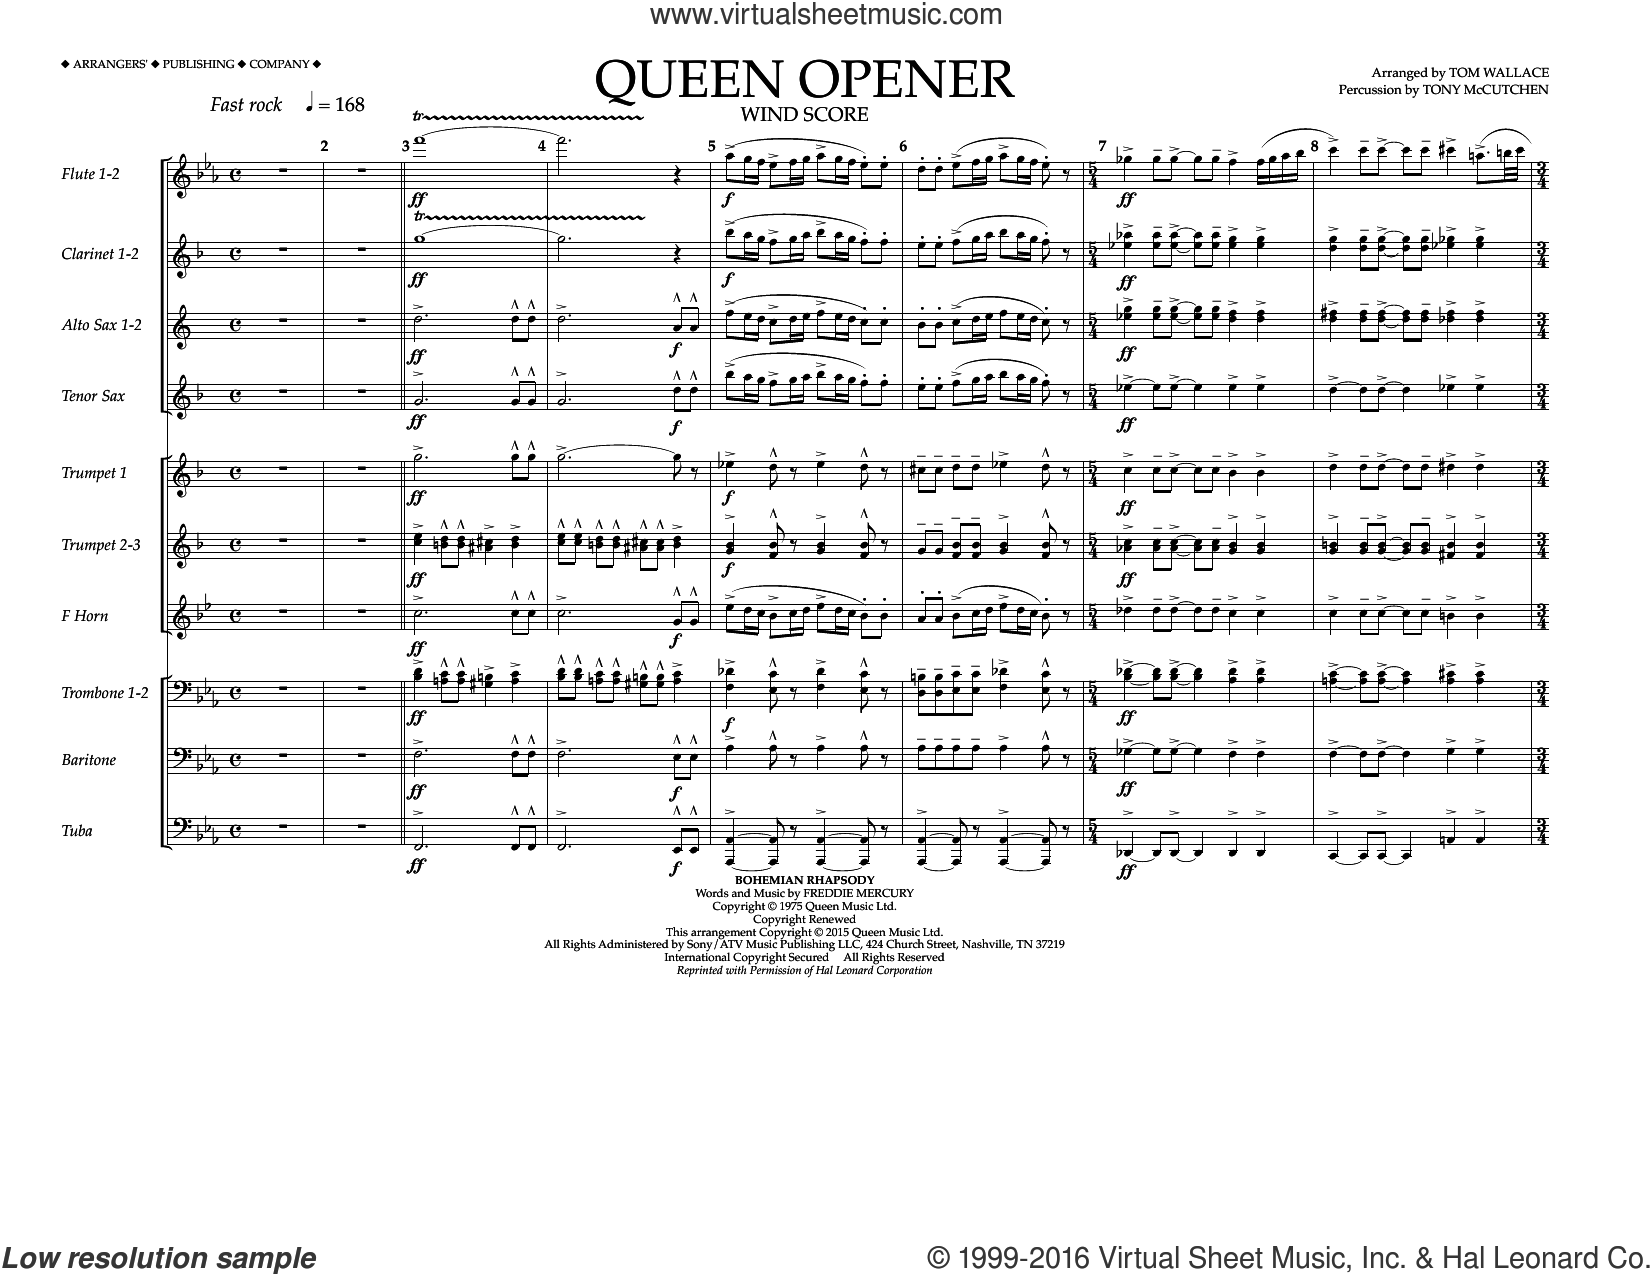 Queen Opener sheet music for marching band (wind score) by Tom Wallace